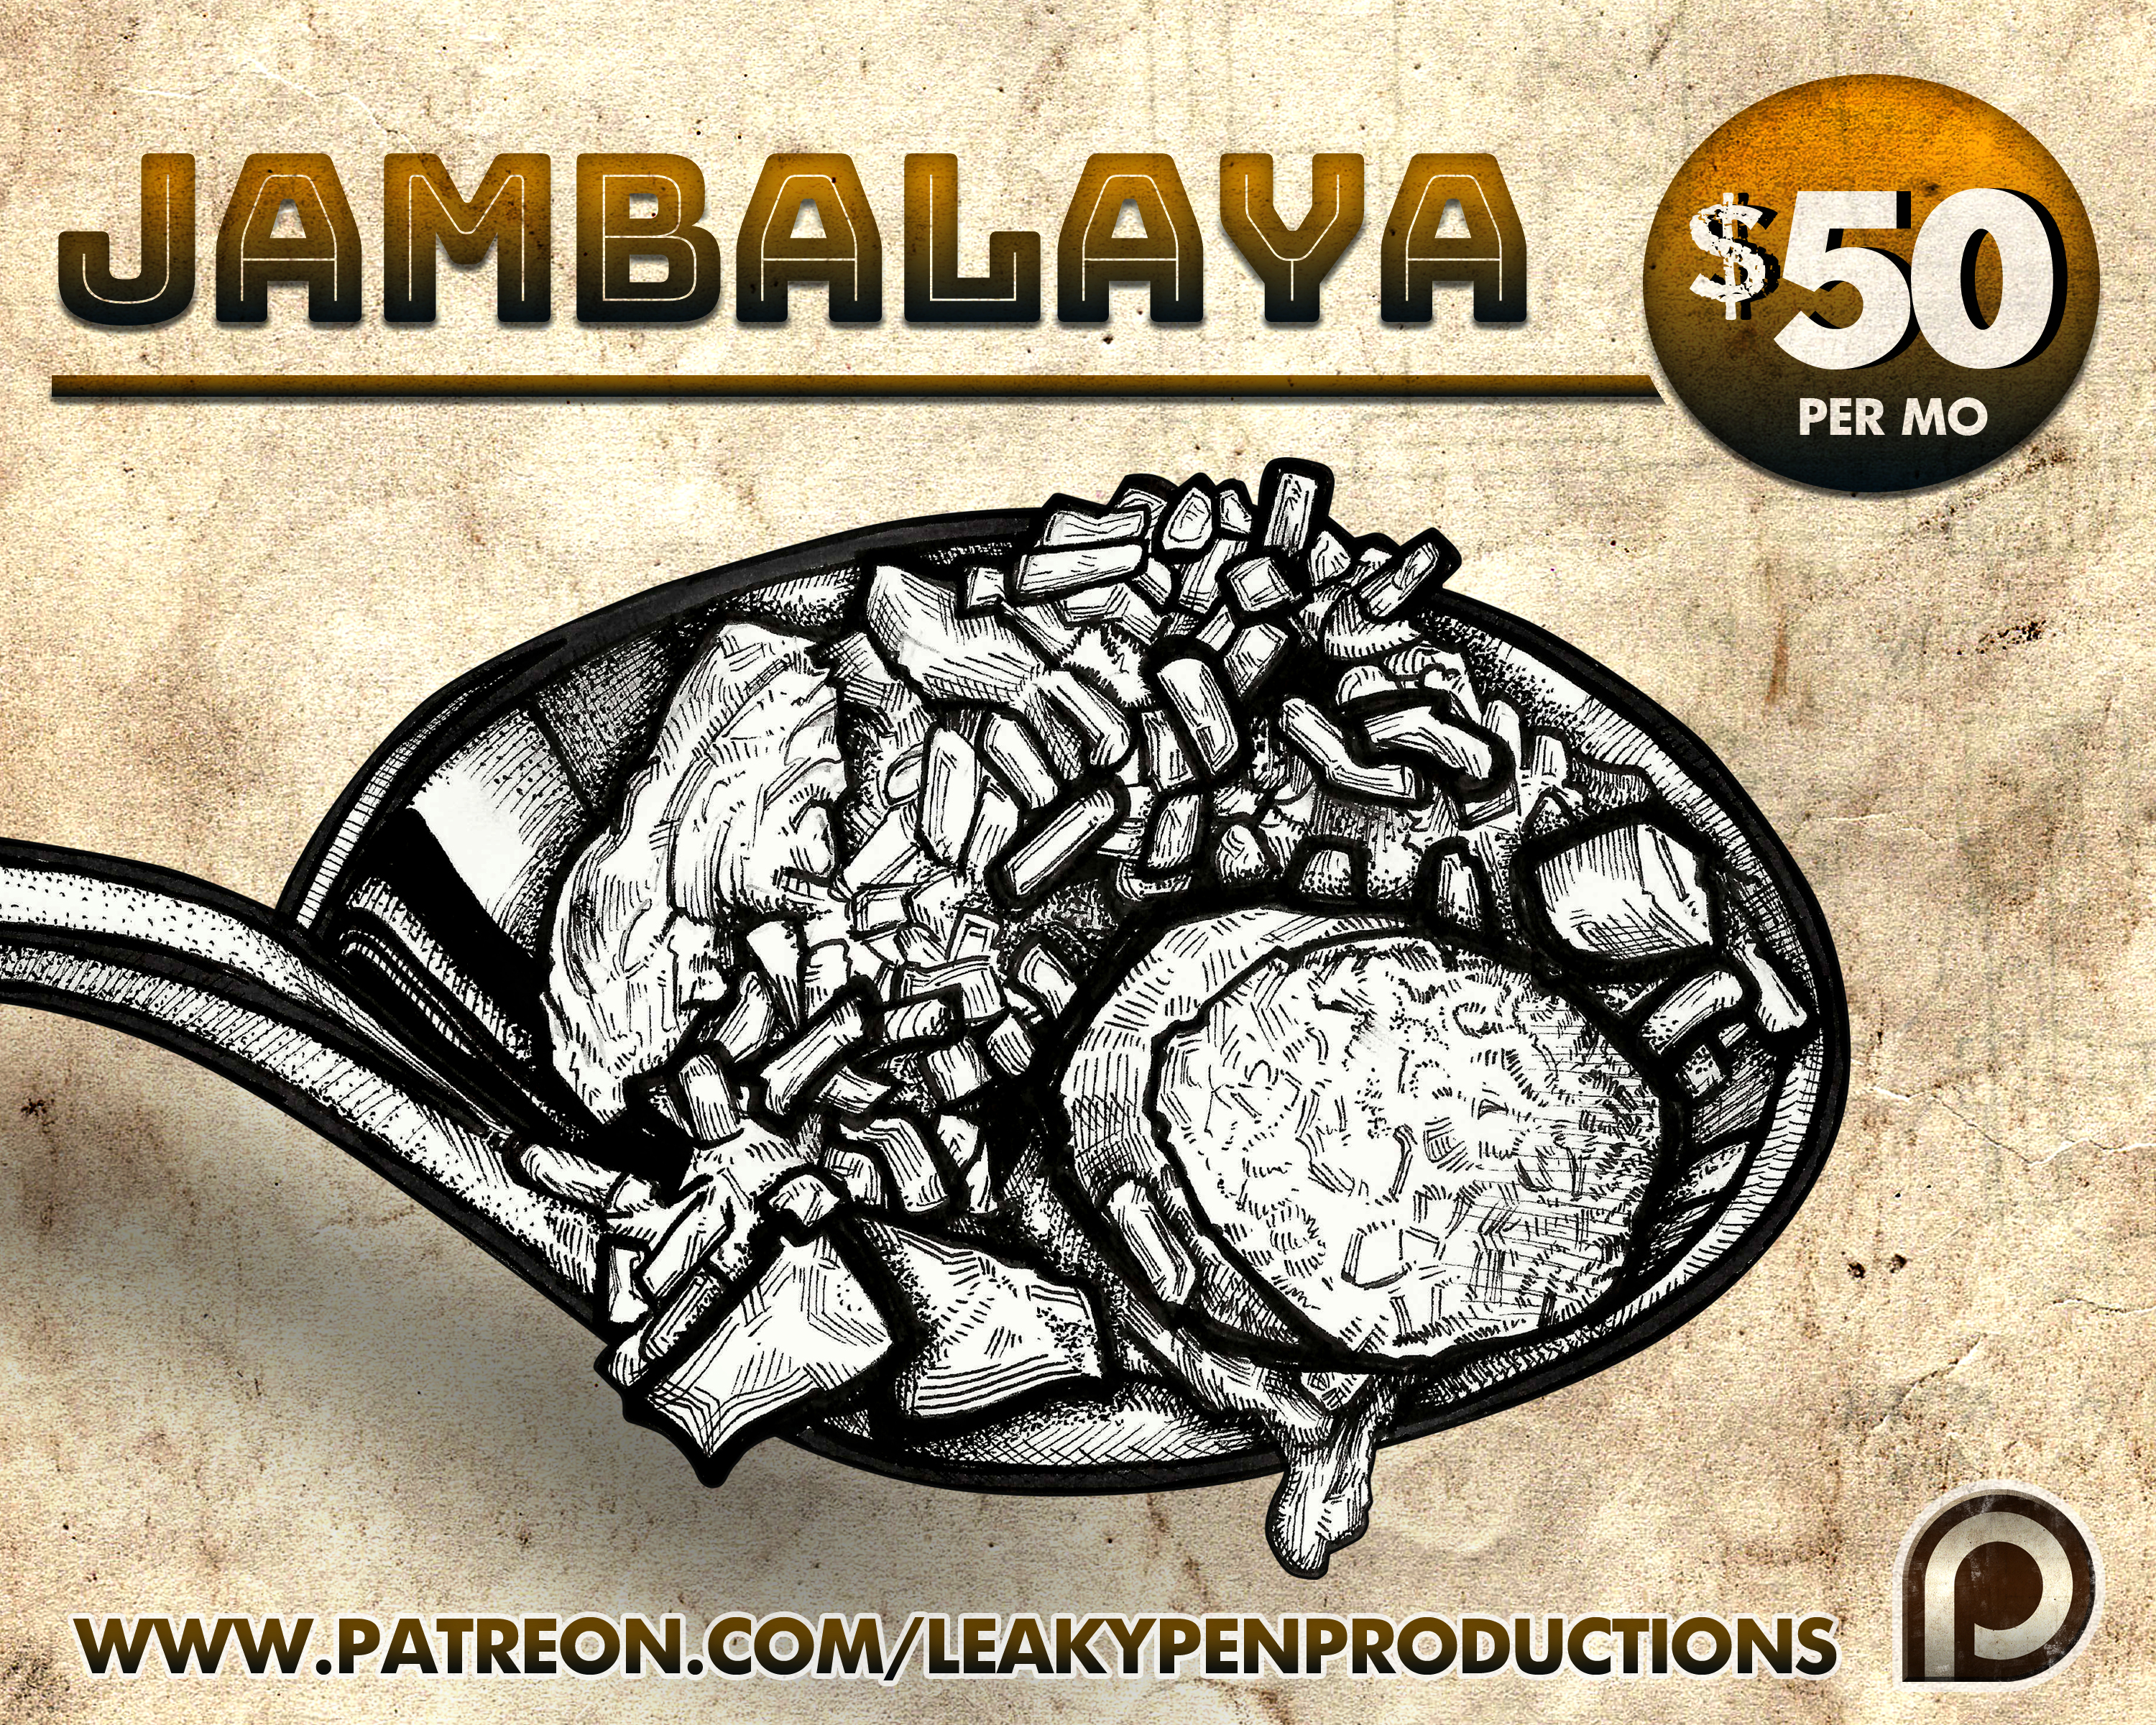 Jambalaya rewards